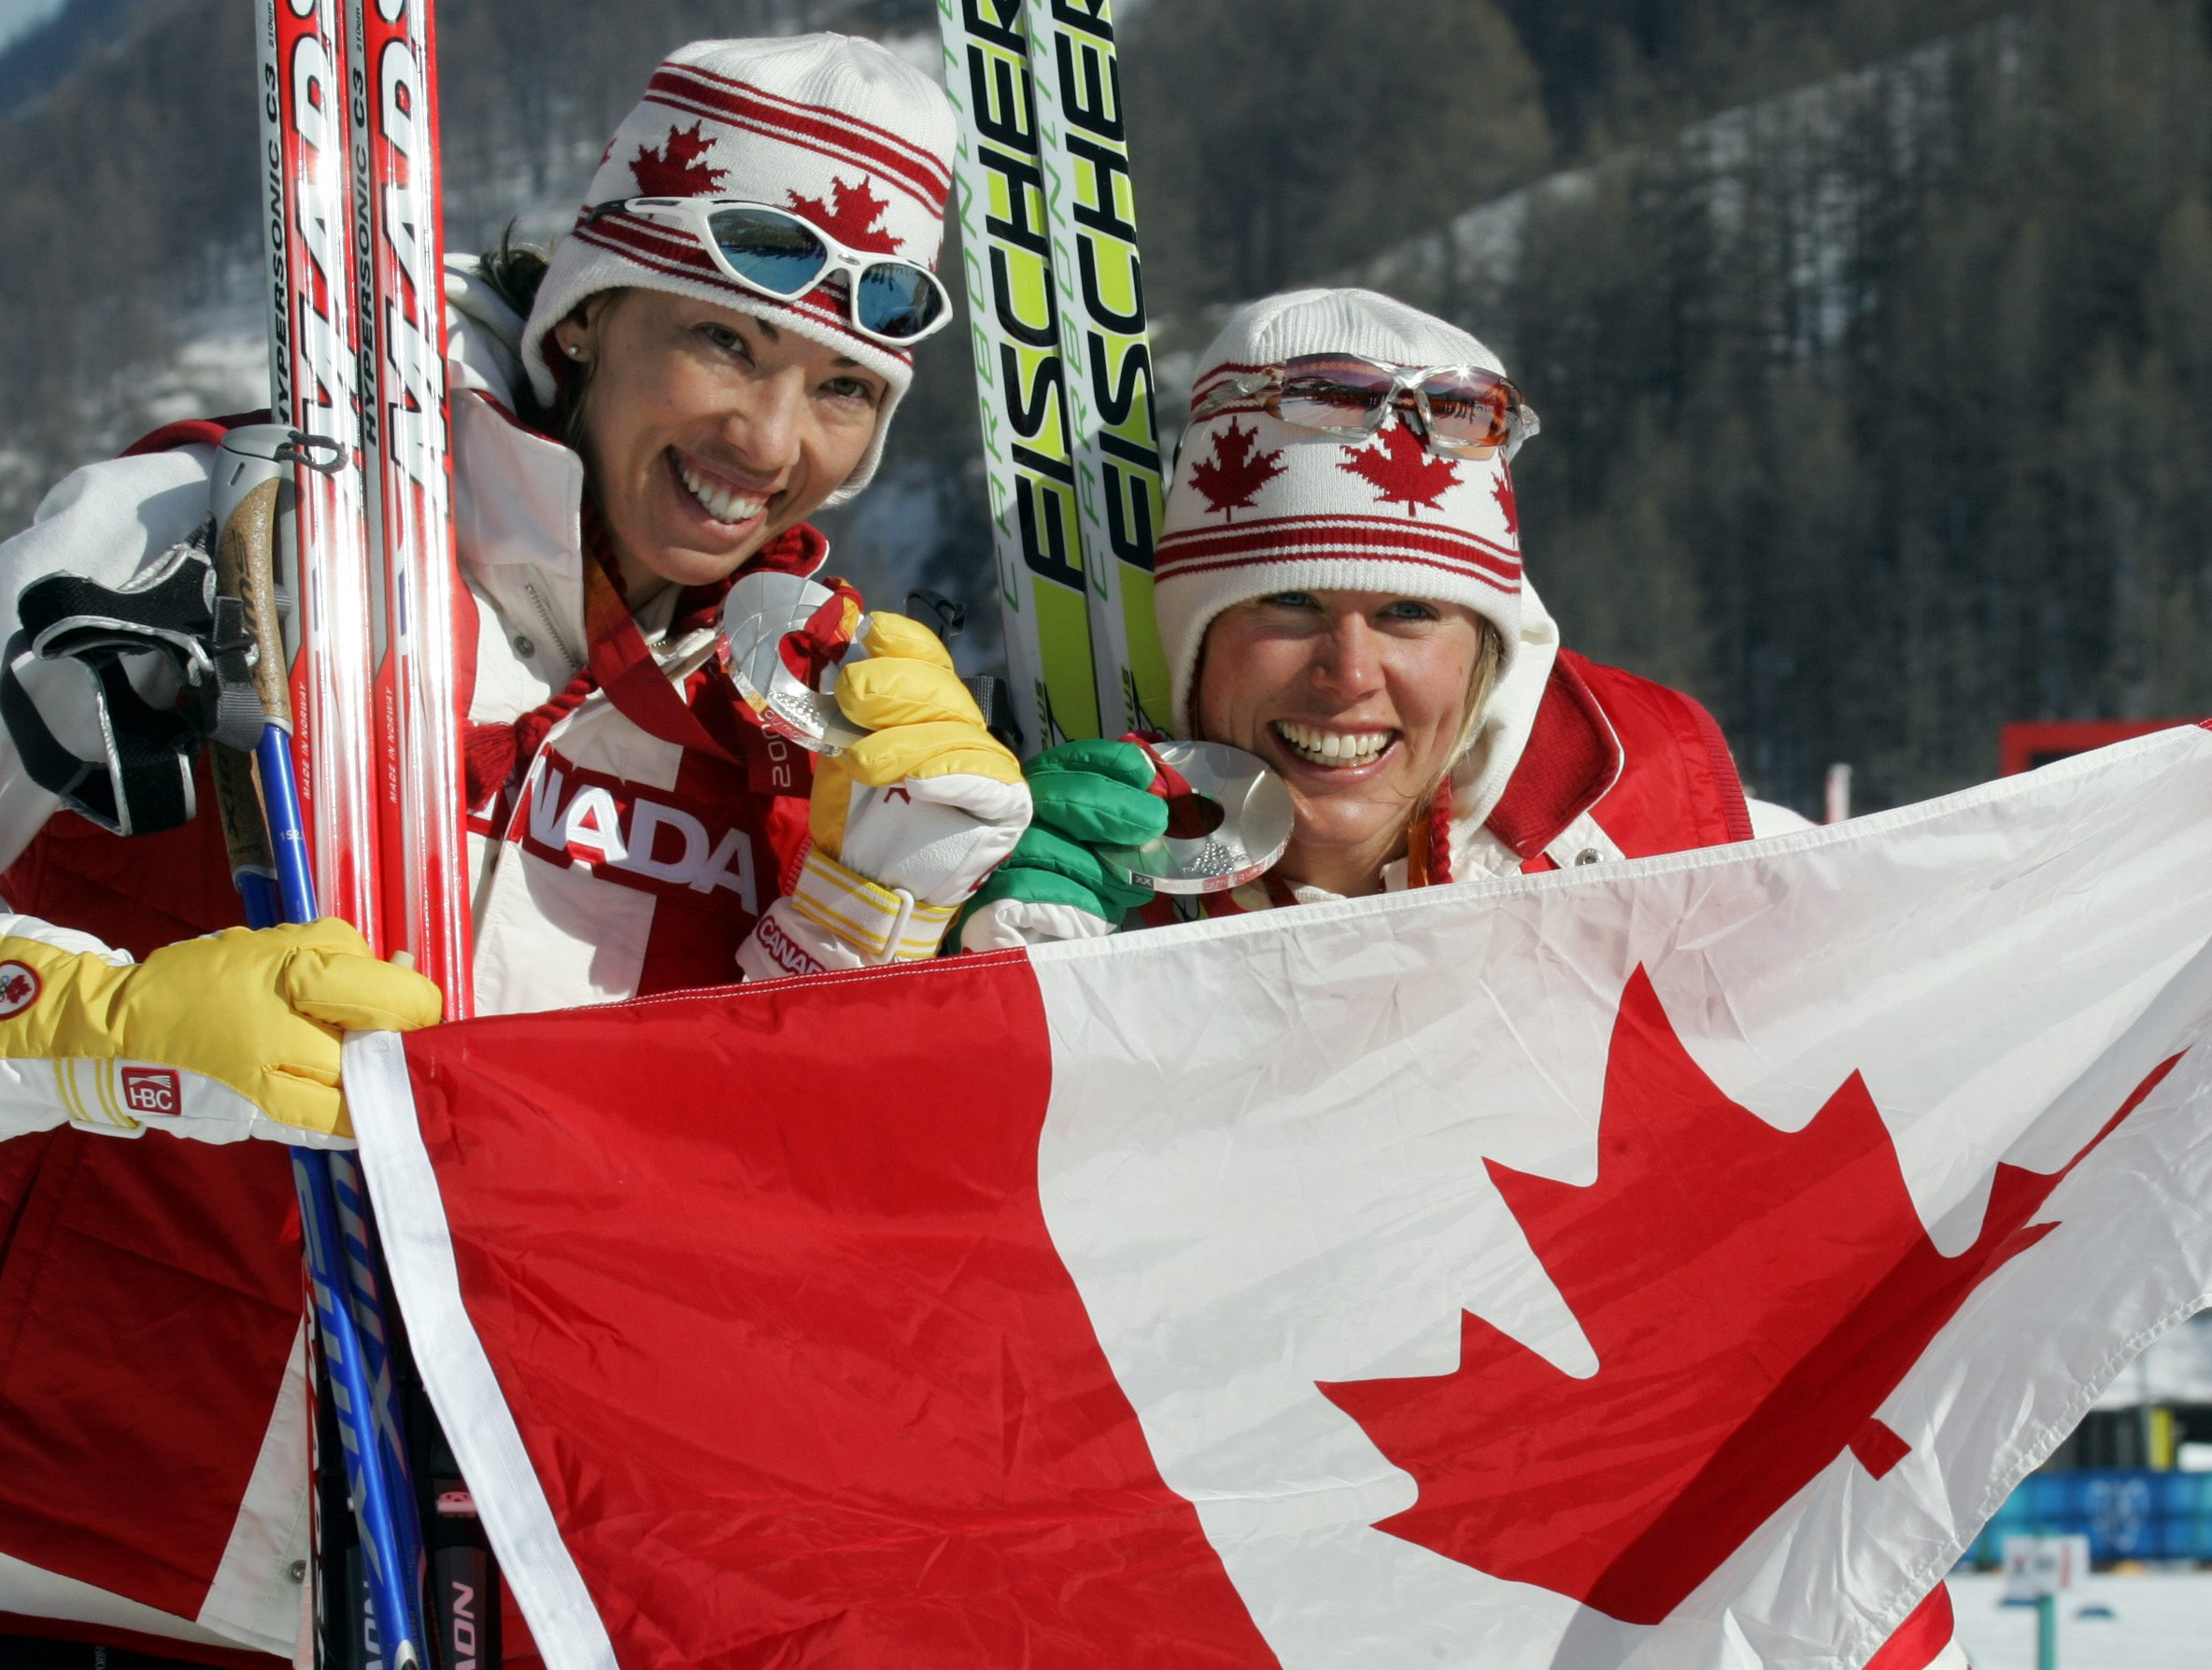 Beckie Scott, left, and Sara Renner pose with the Canadian flag as they display their silver medals